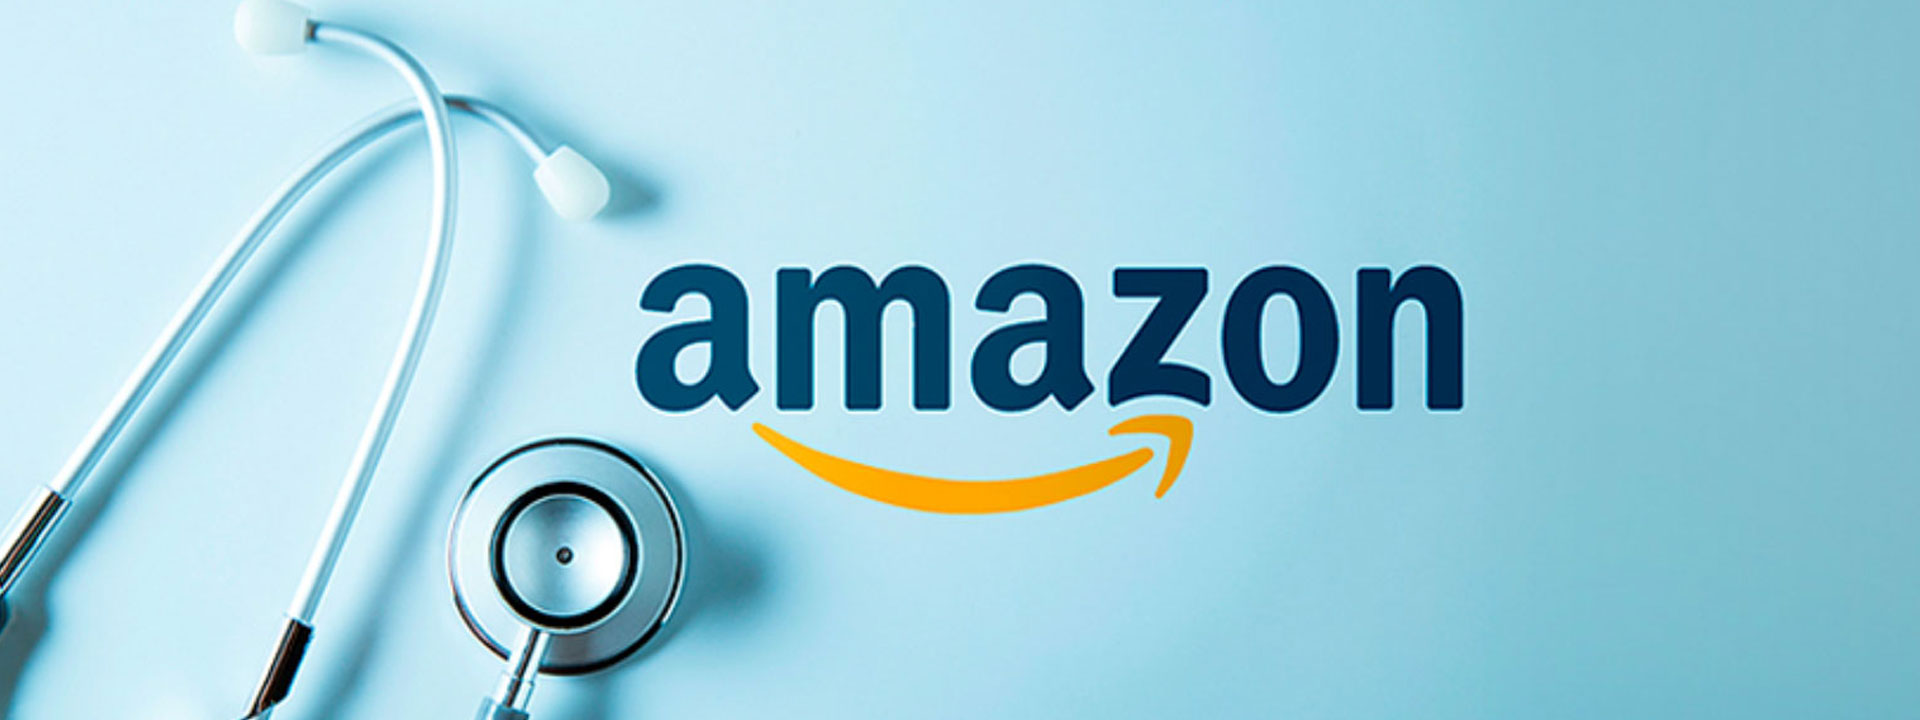 CG42 - Amazon could roll expanded healthcare plans, services into Prime: experts